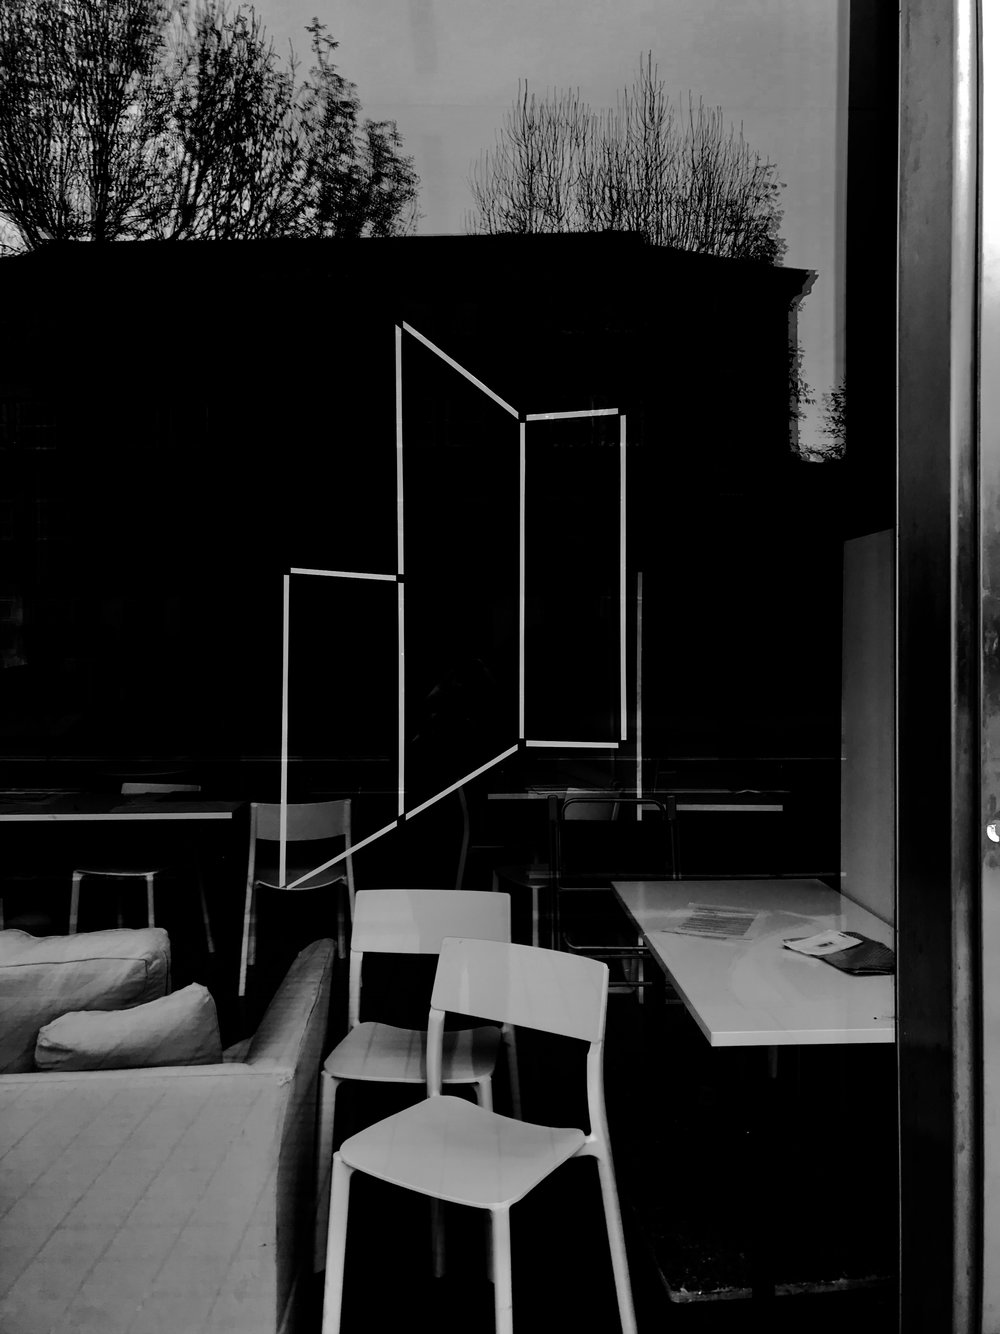 The Screen. The Window. The Chair. (In That Order) - 2017.jpg